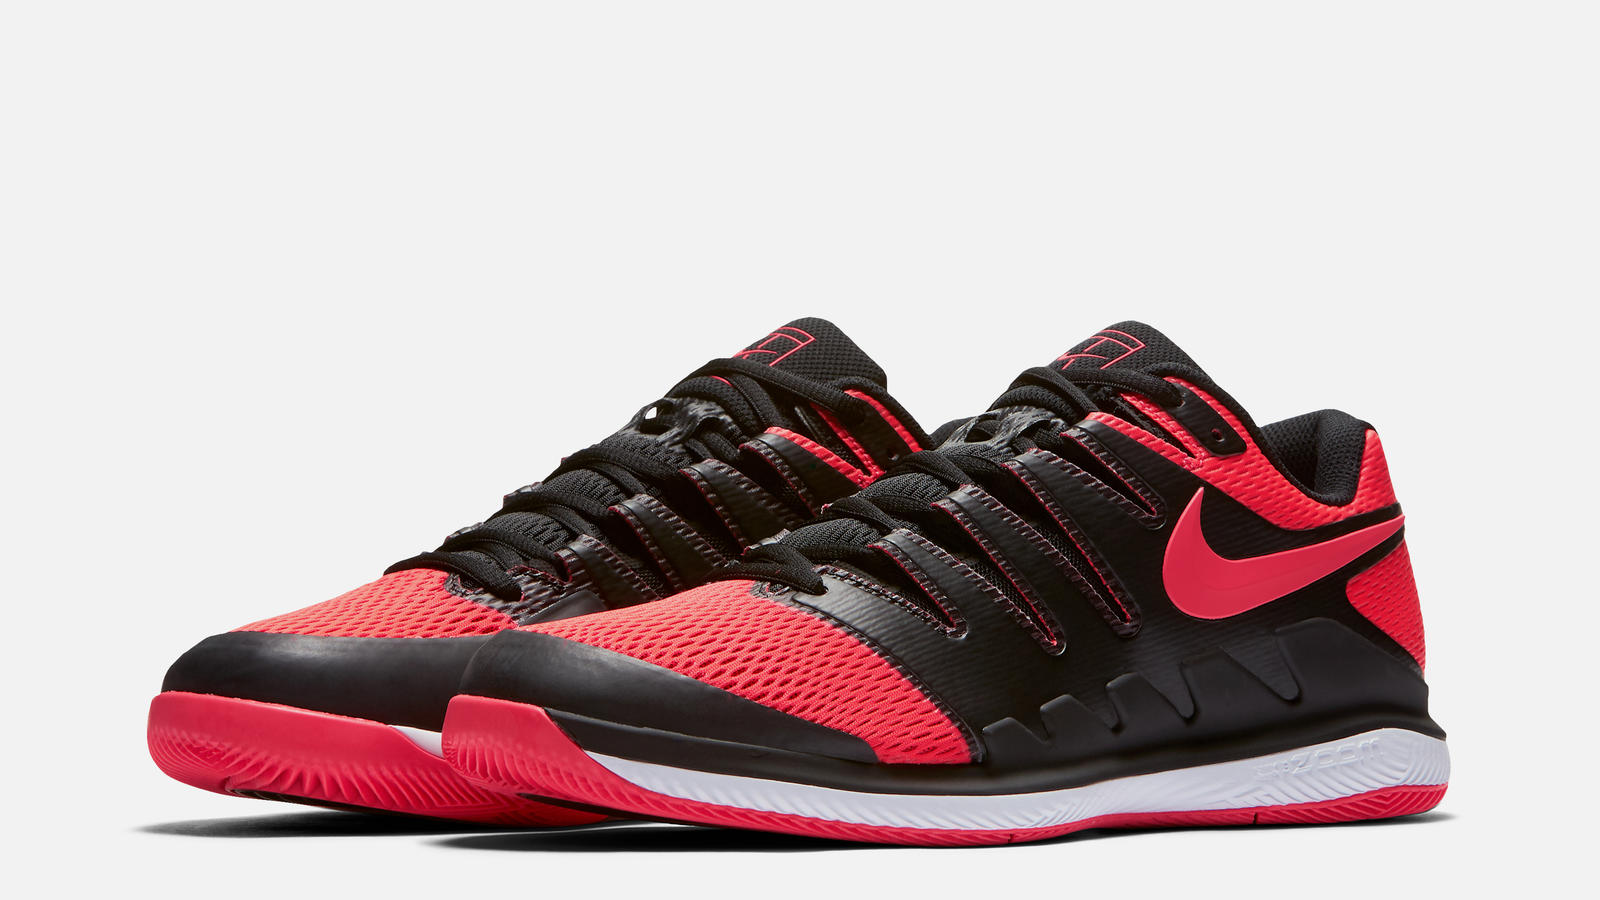 e0dbd54f092bf6 Introducing the NikeCourt Vapor X - Nike News